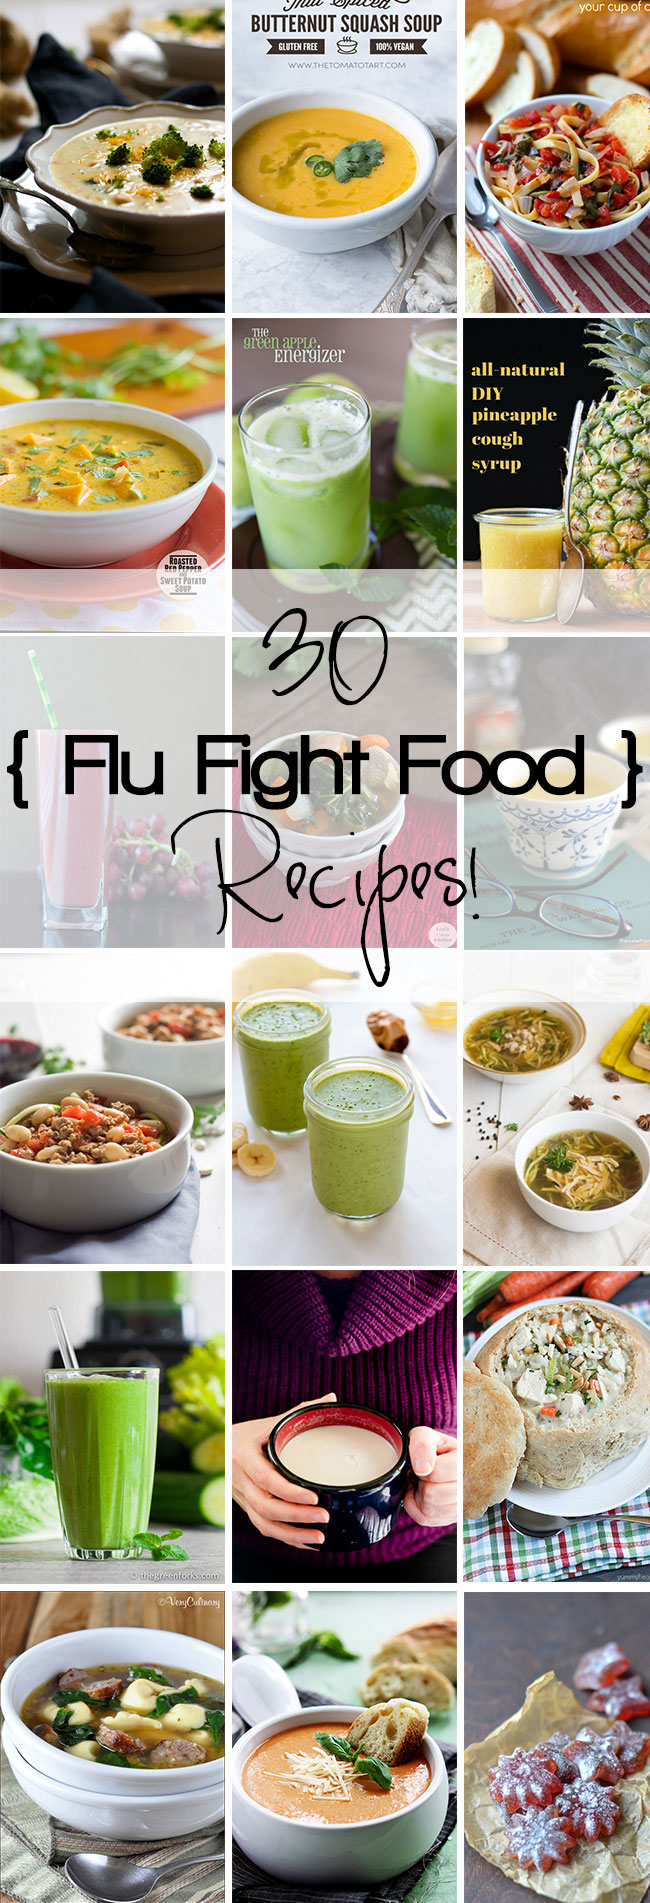 30 Flu Fighting Food Recipes to make you feel better inside and out! Everything from creamy chicken noodle soup to nutrient rich green smoothies!